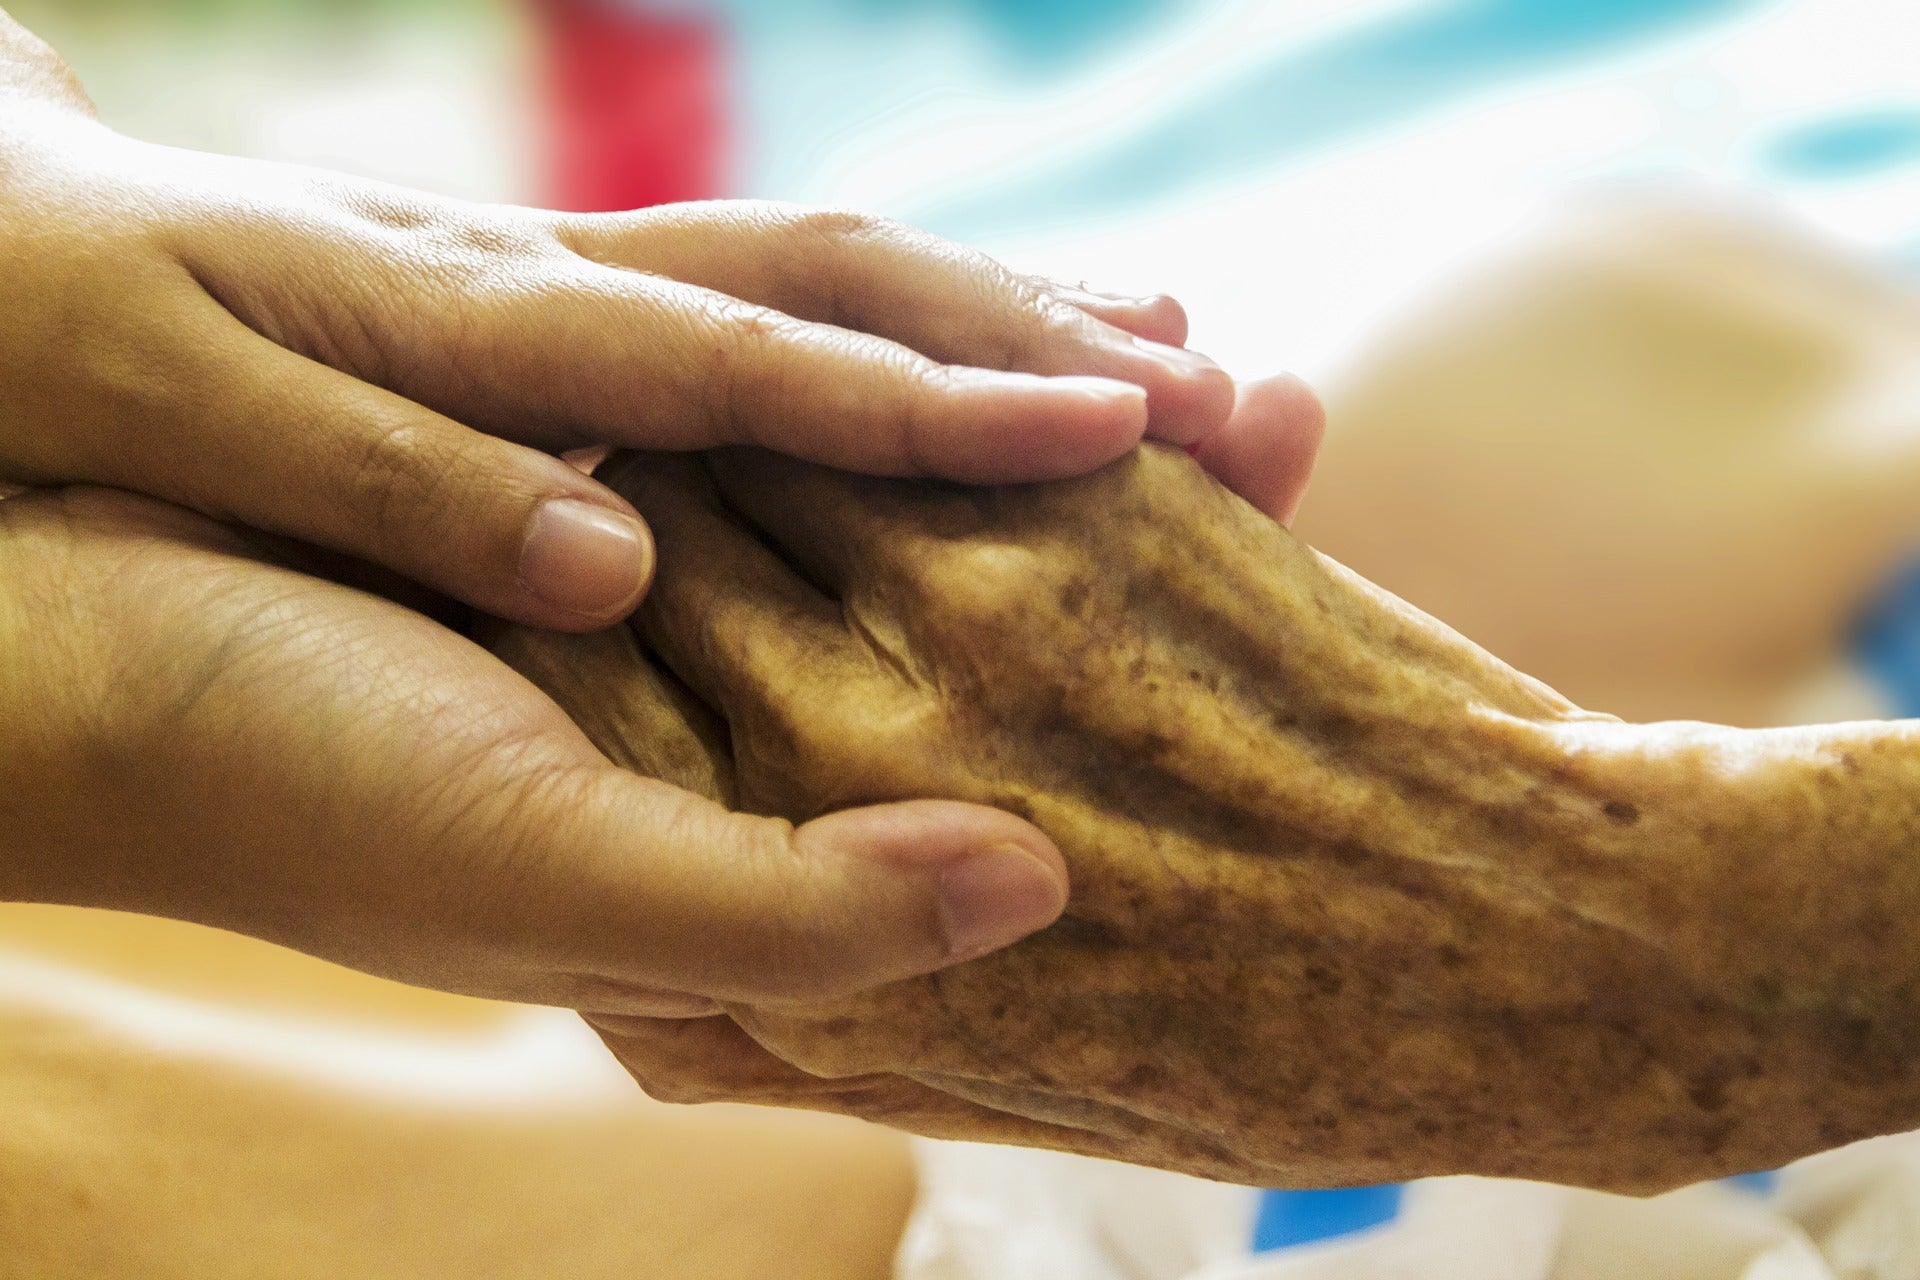 WHY OUR GRANDPARENTS DESERVE A LITTLE PAMPERING: Massage as a Symbol of Elderly Love and Care